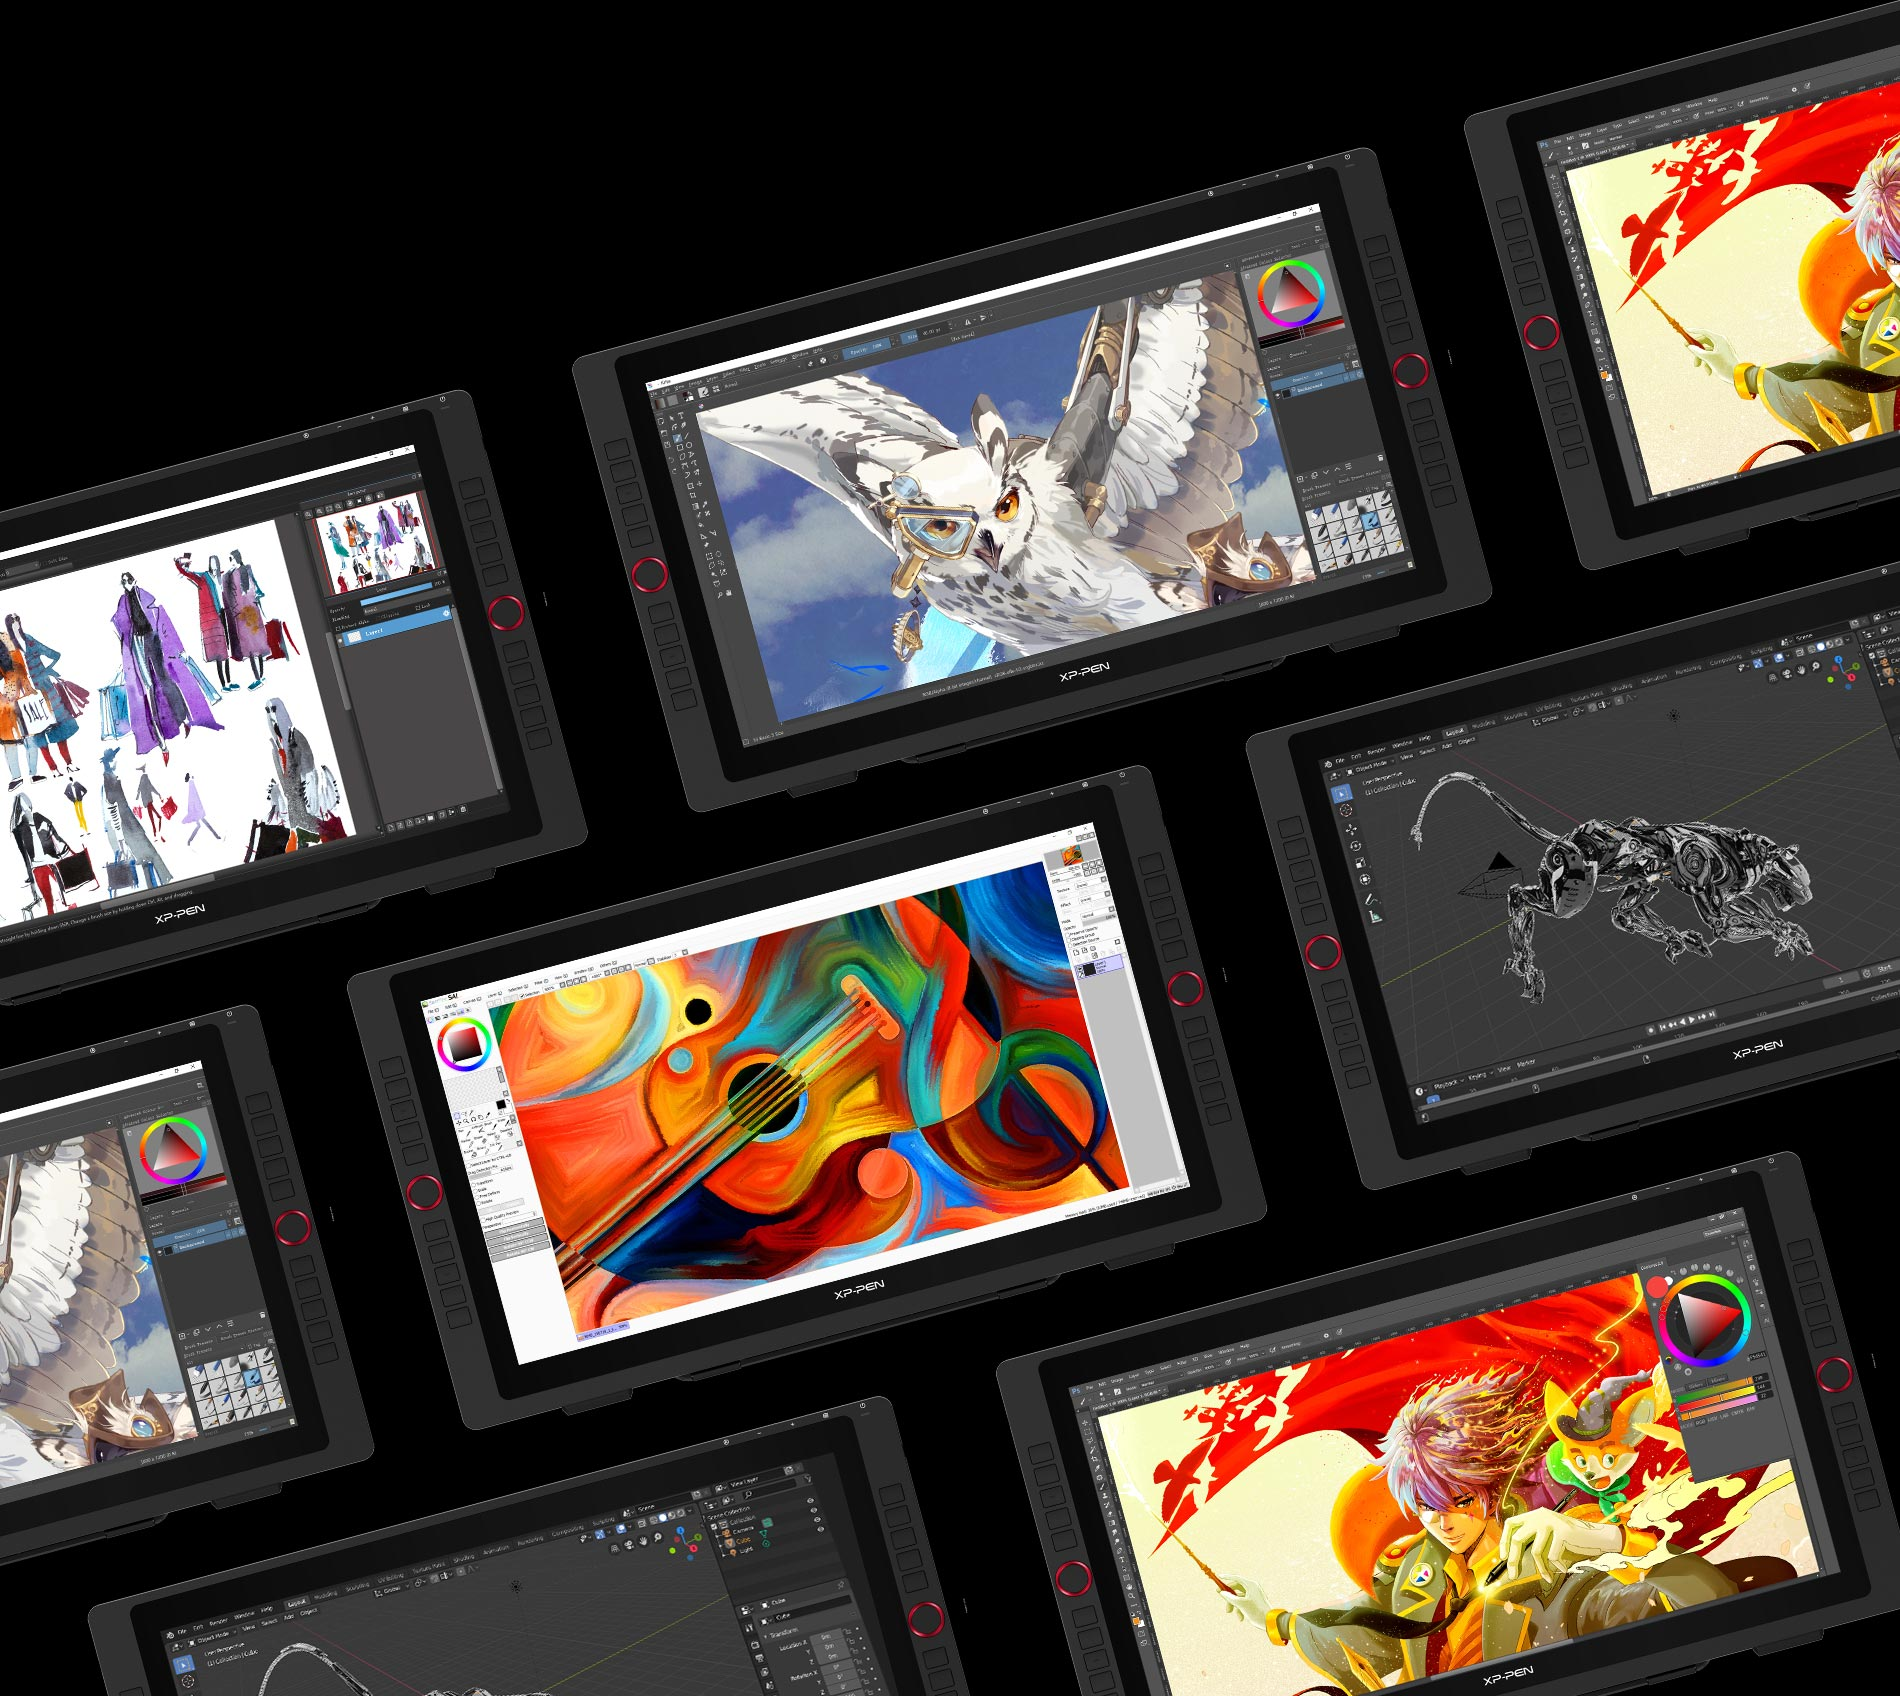 XP-Pen Artist 22R Pro Supports Windows and Mac OS , Compatible with popular digital art software